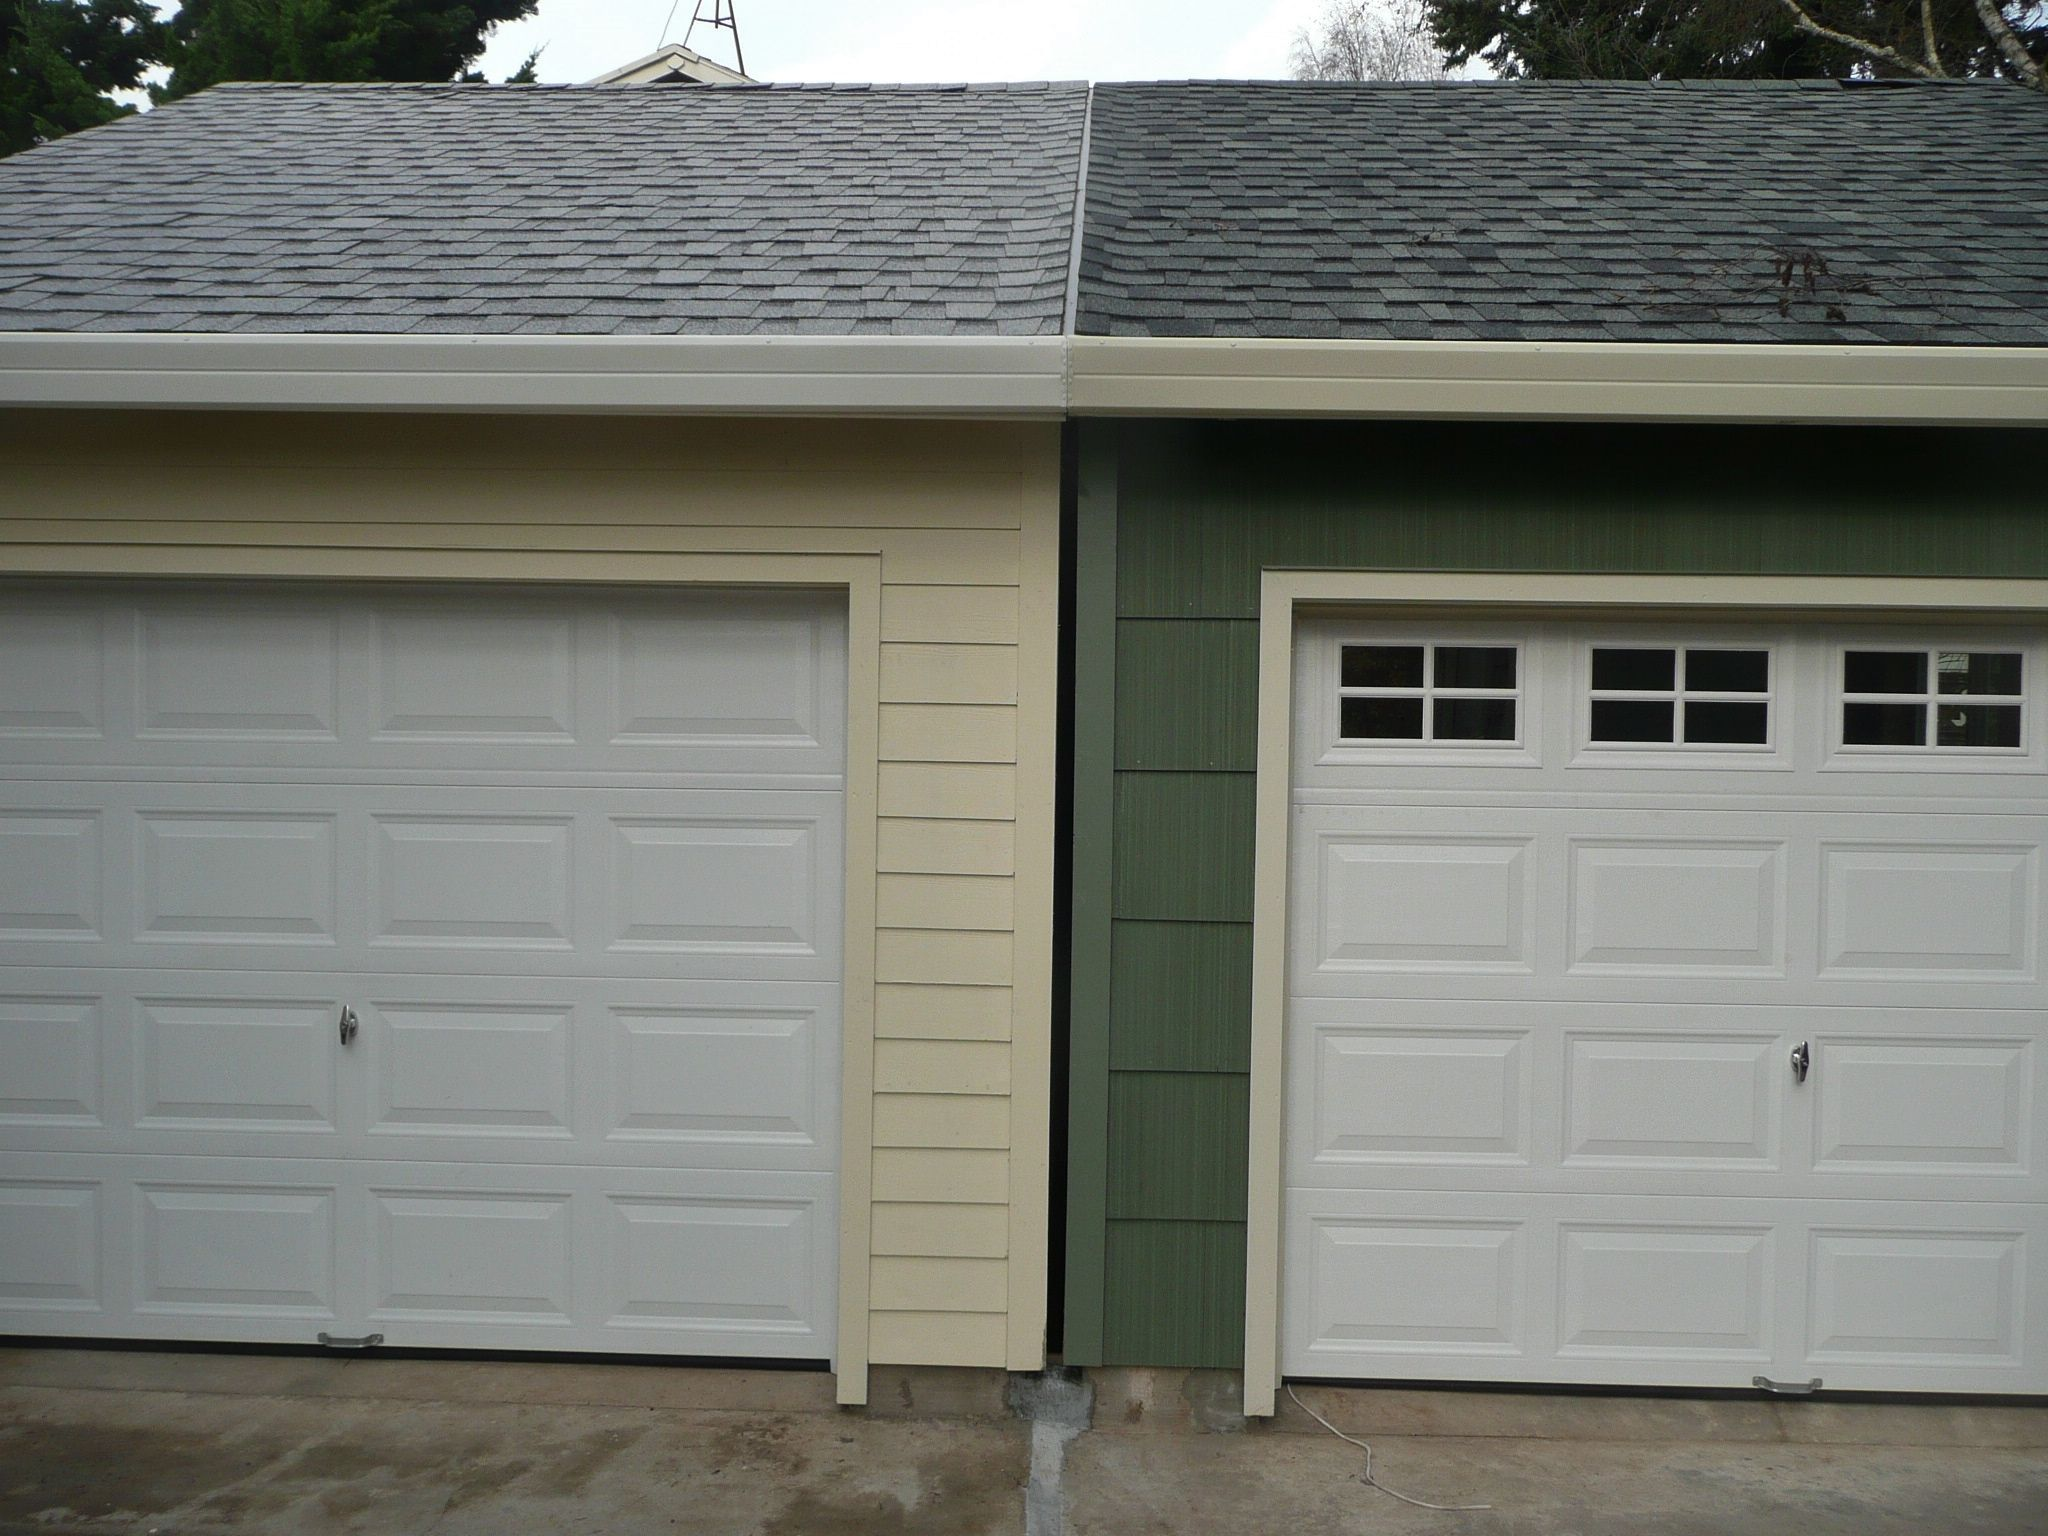 fort doors size near of door installation repair in garage me companies worth clopay tx springs hormann full